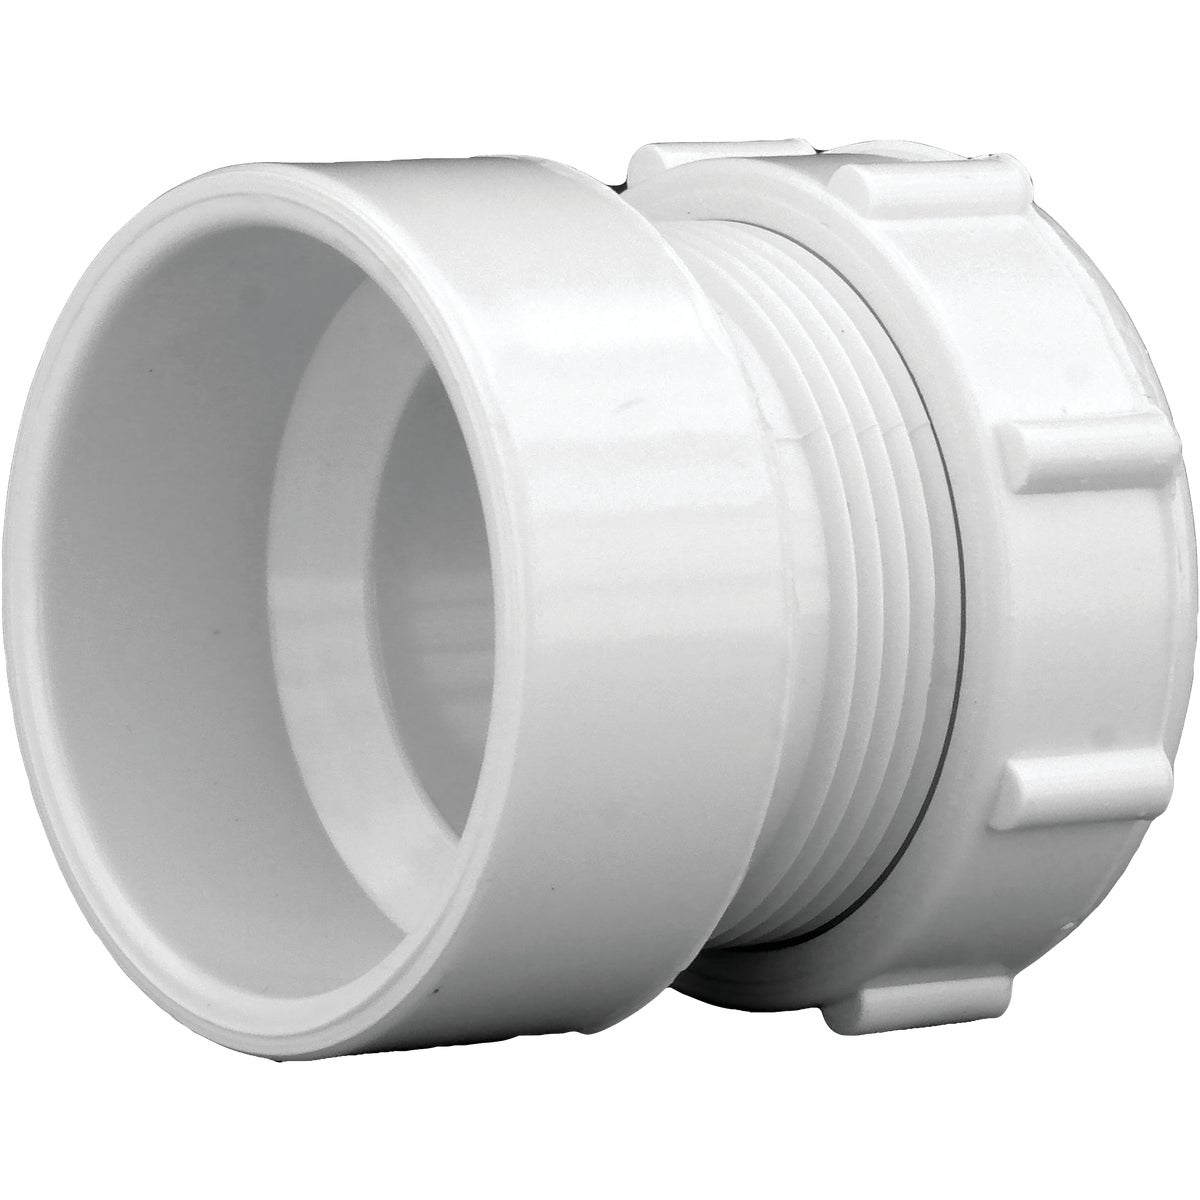 1-1/2X1-1/4 F ADAPTER - 72211 by Genova Inc  Pvc Dwv